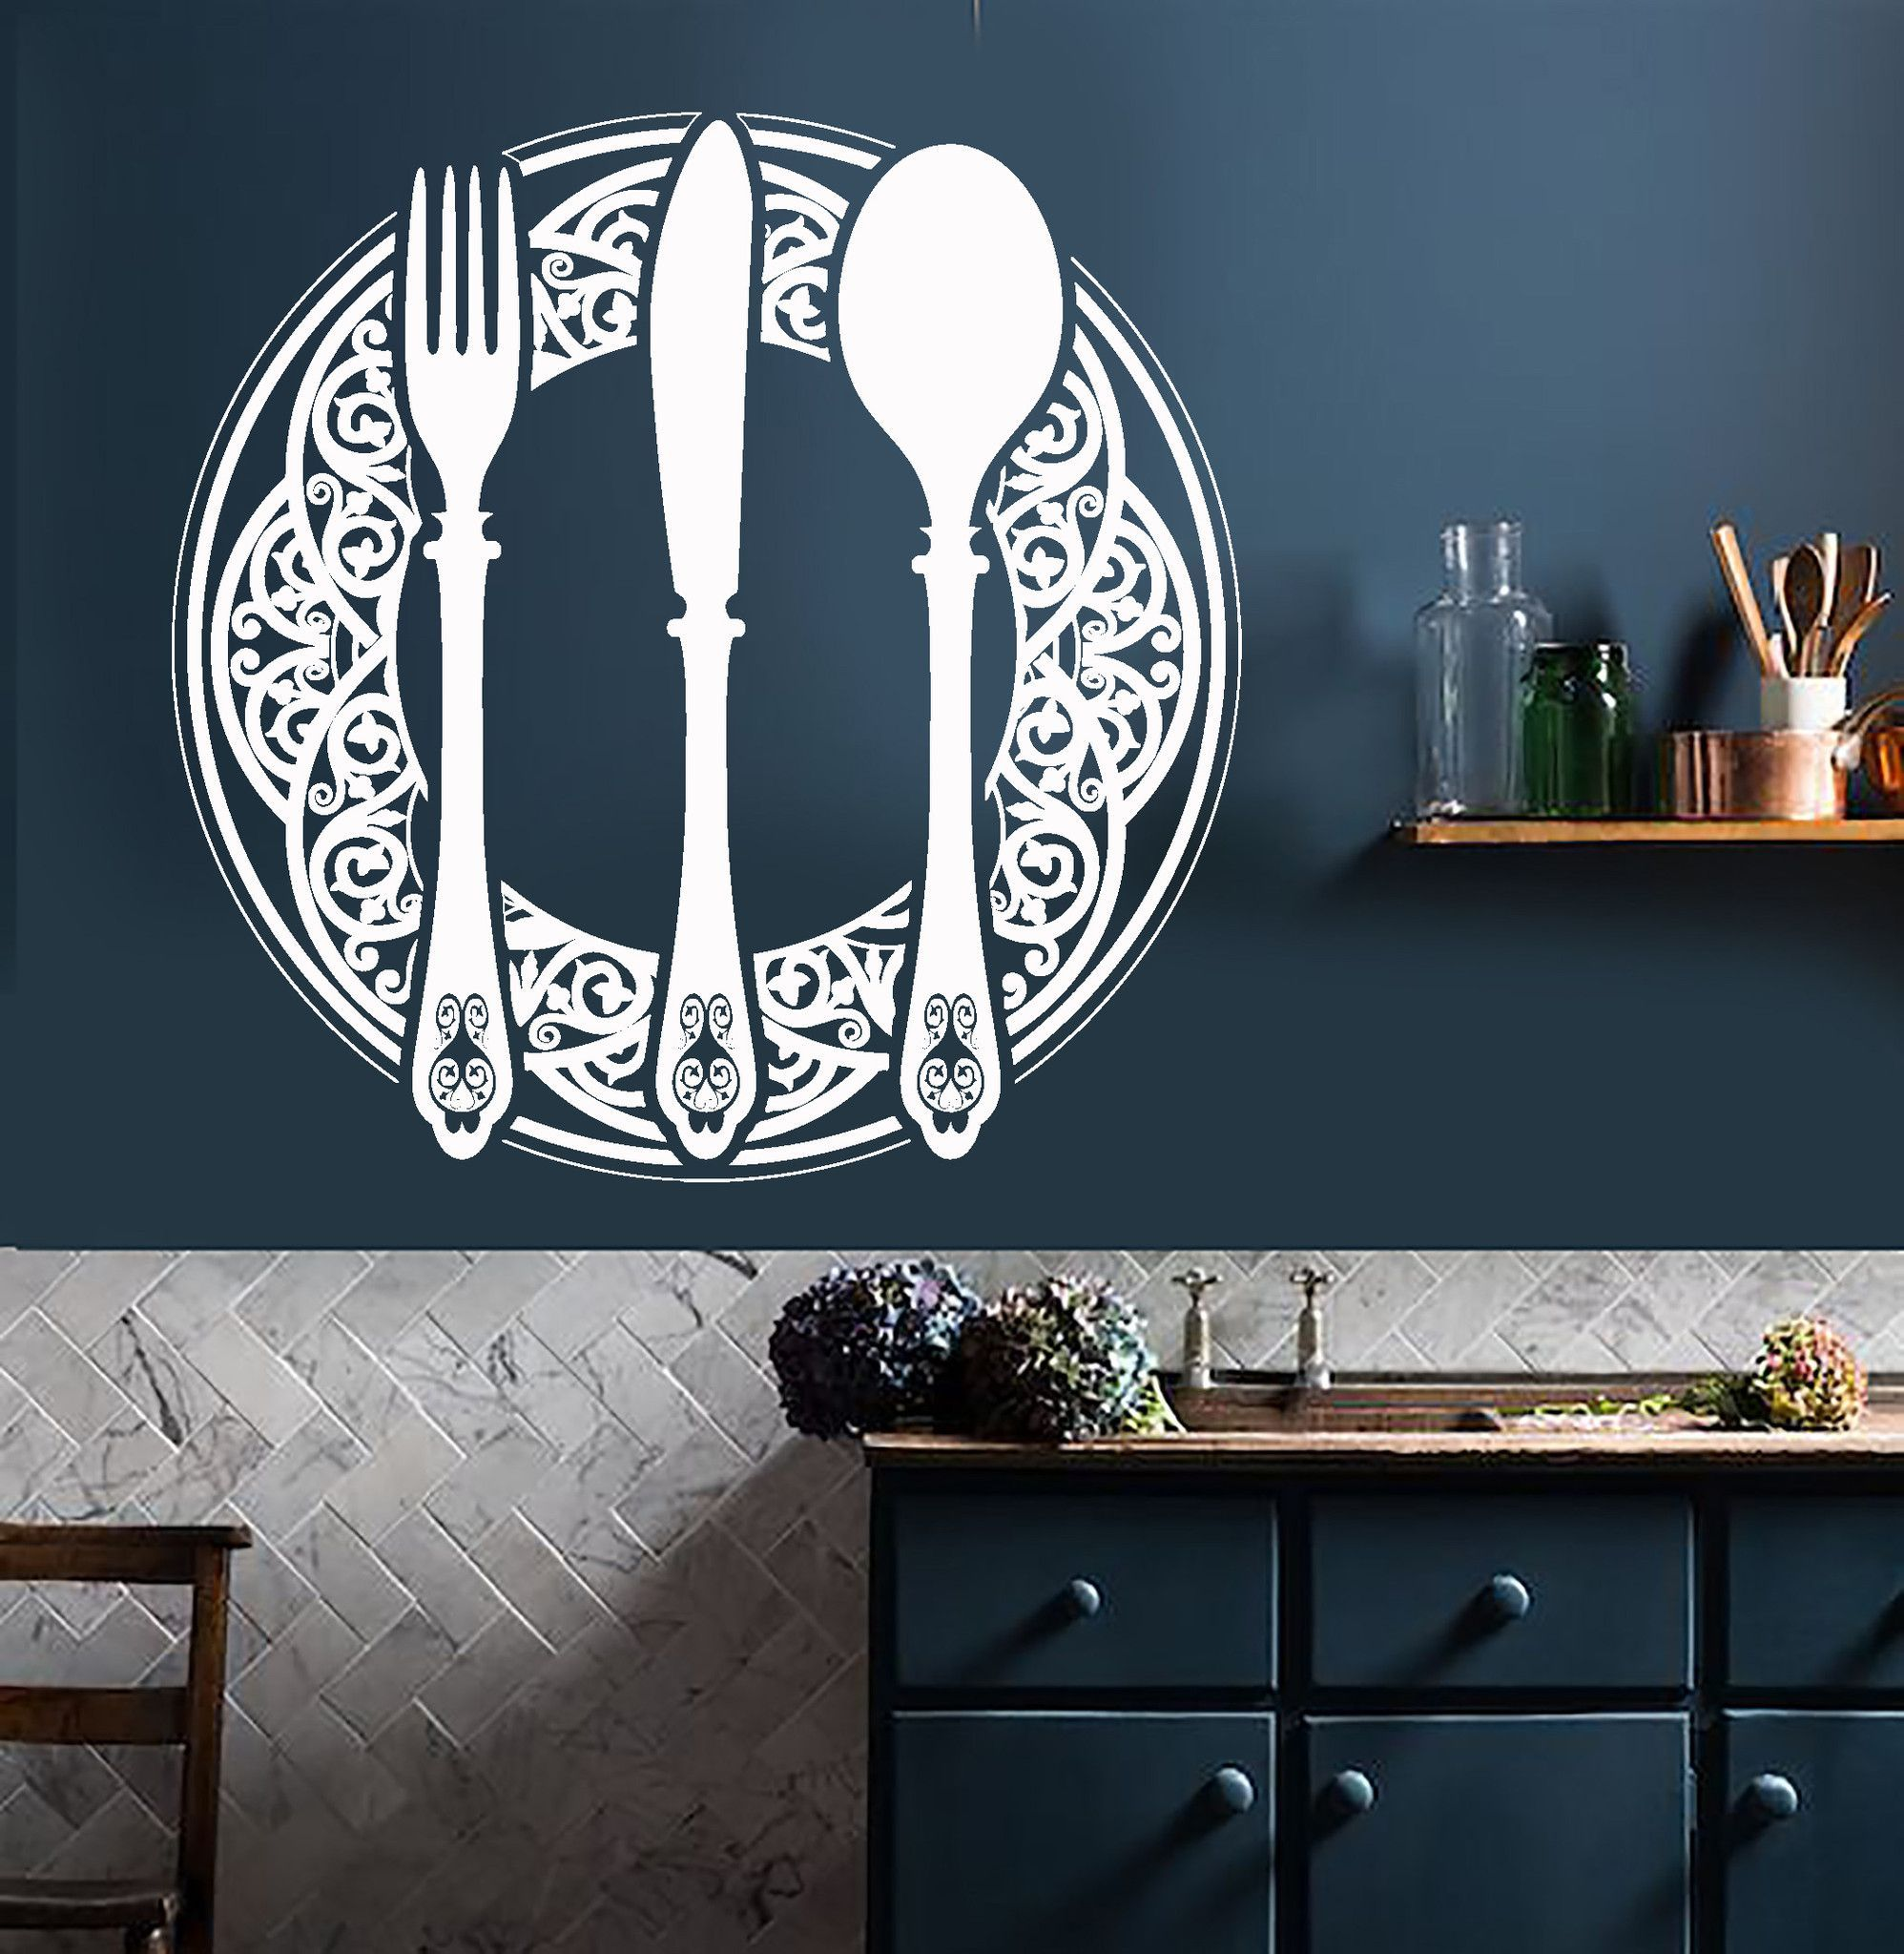 Vinyl Wall Decal Cutlery Dining Room Decoration Kitchen Restaurant Stickers Unique Gift 736ig Wall Vinyl Decor Dining Room Decor Restaurant Decor